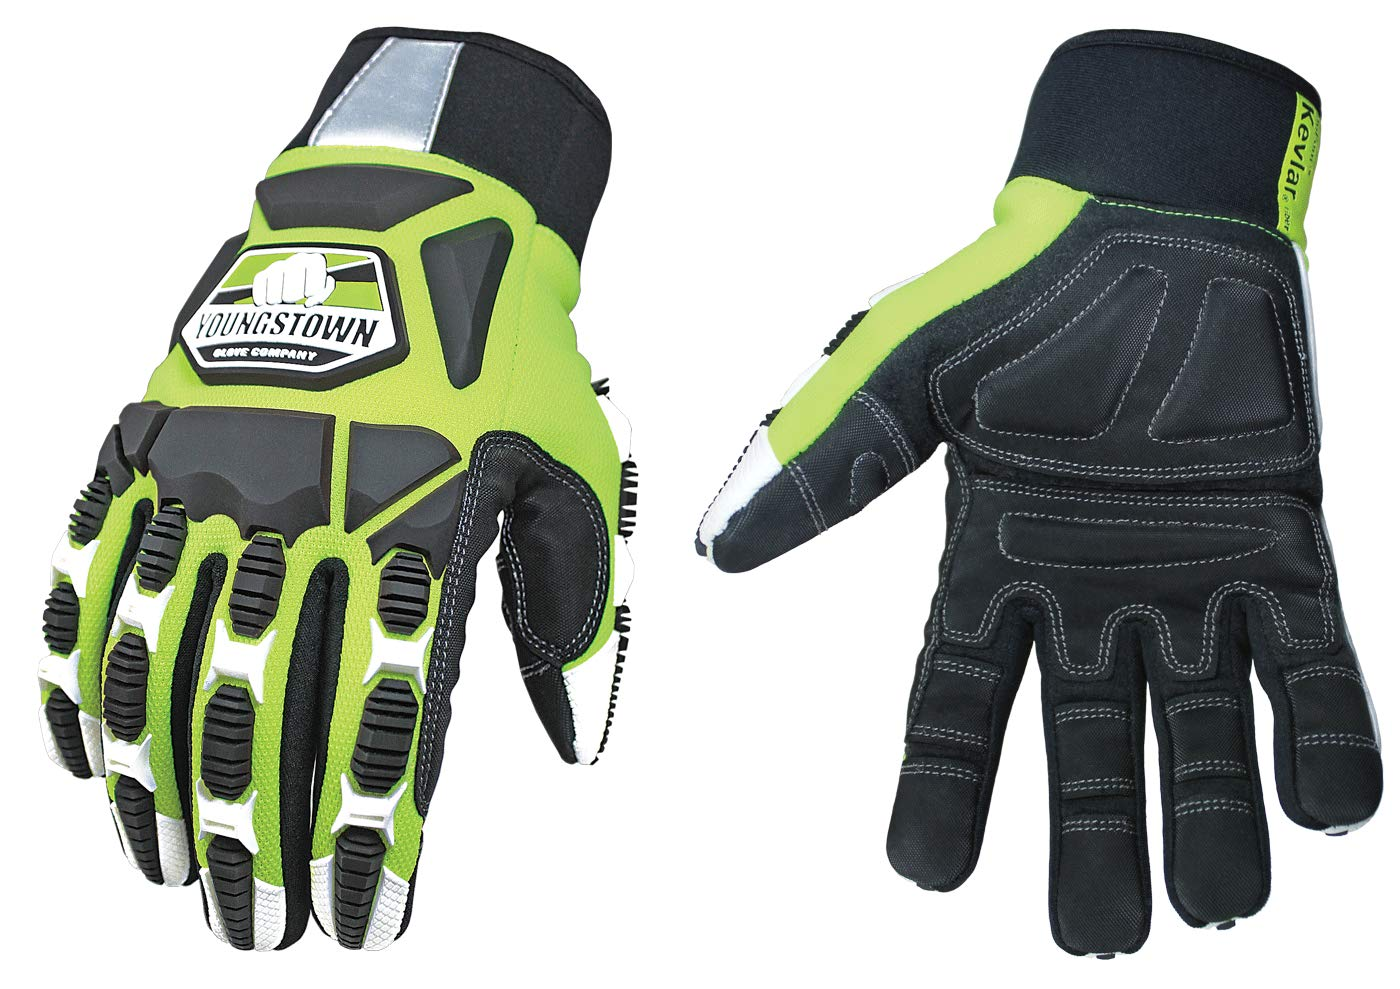 Cut Resistant Gloves Bundle - 1 - Firefighter Extrication Gloves (Large) | 1 - Glove Strap (lime Green) | 1 - Firefighter Journal (Track training hours, Run activities, work, ect.) by Generic (Image #3)